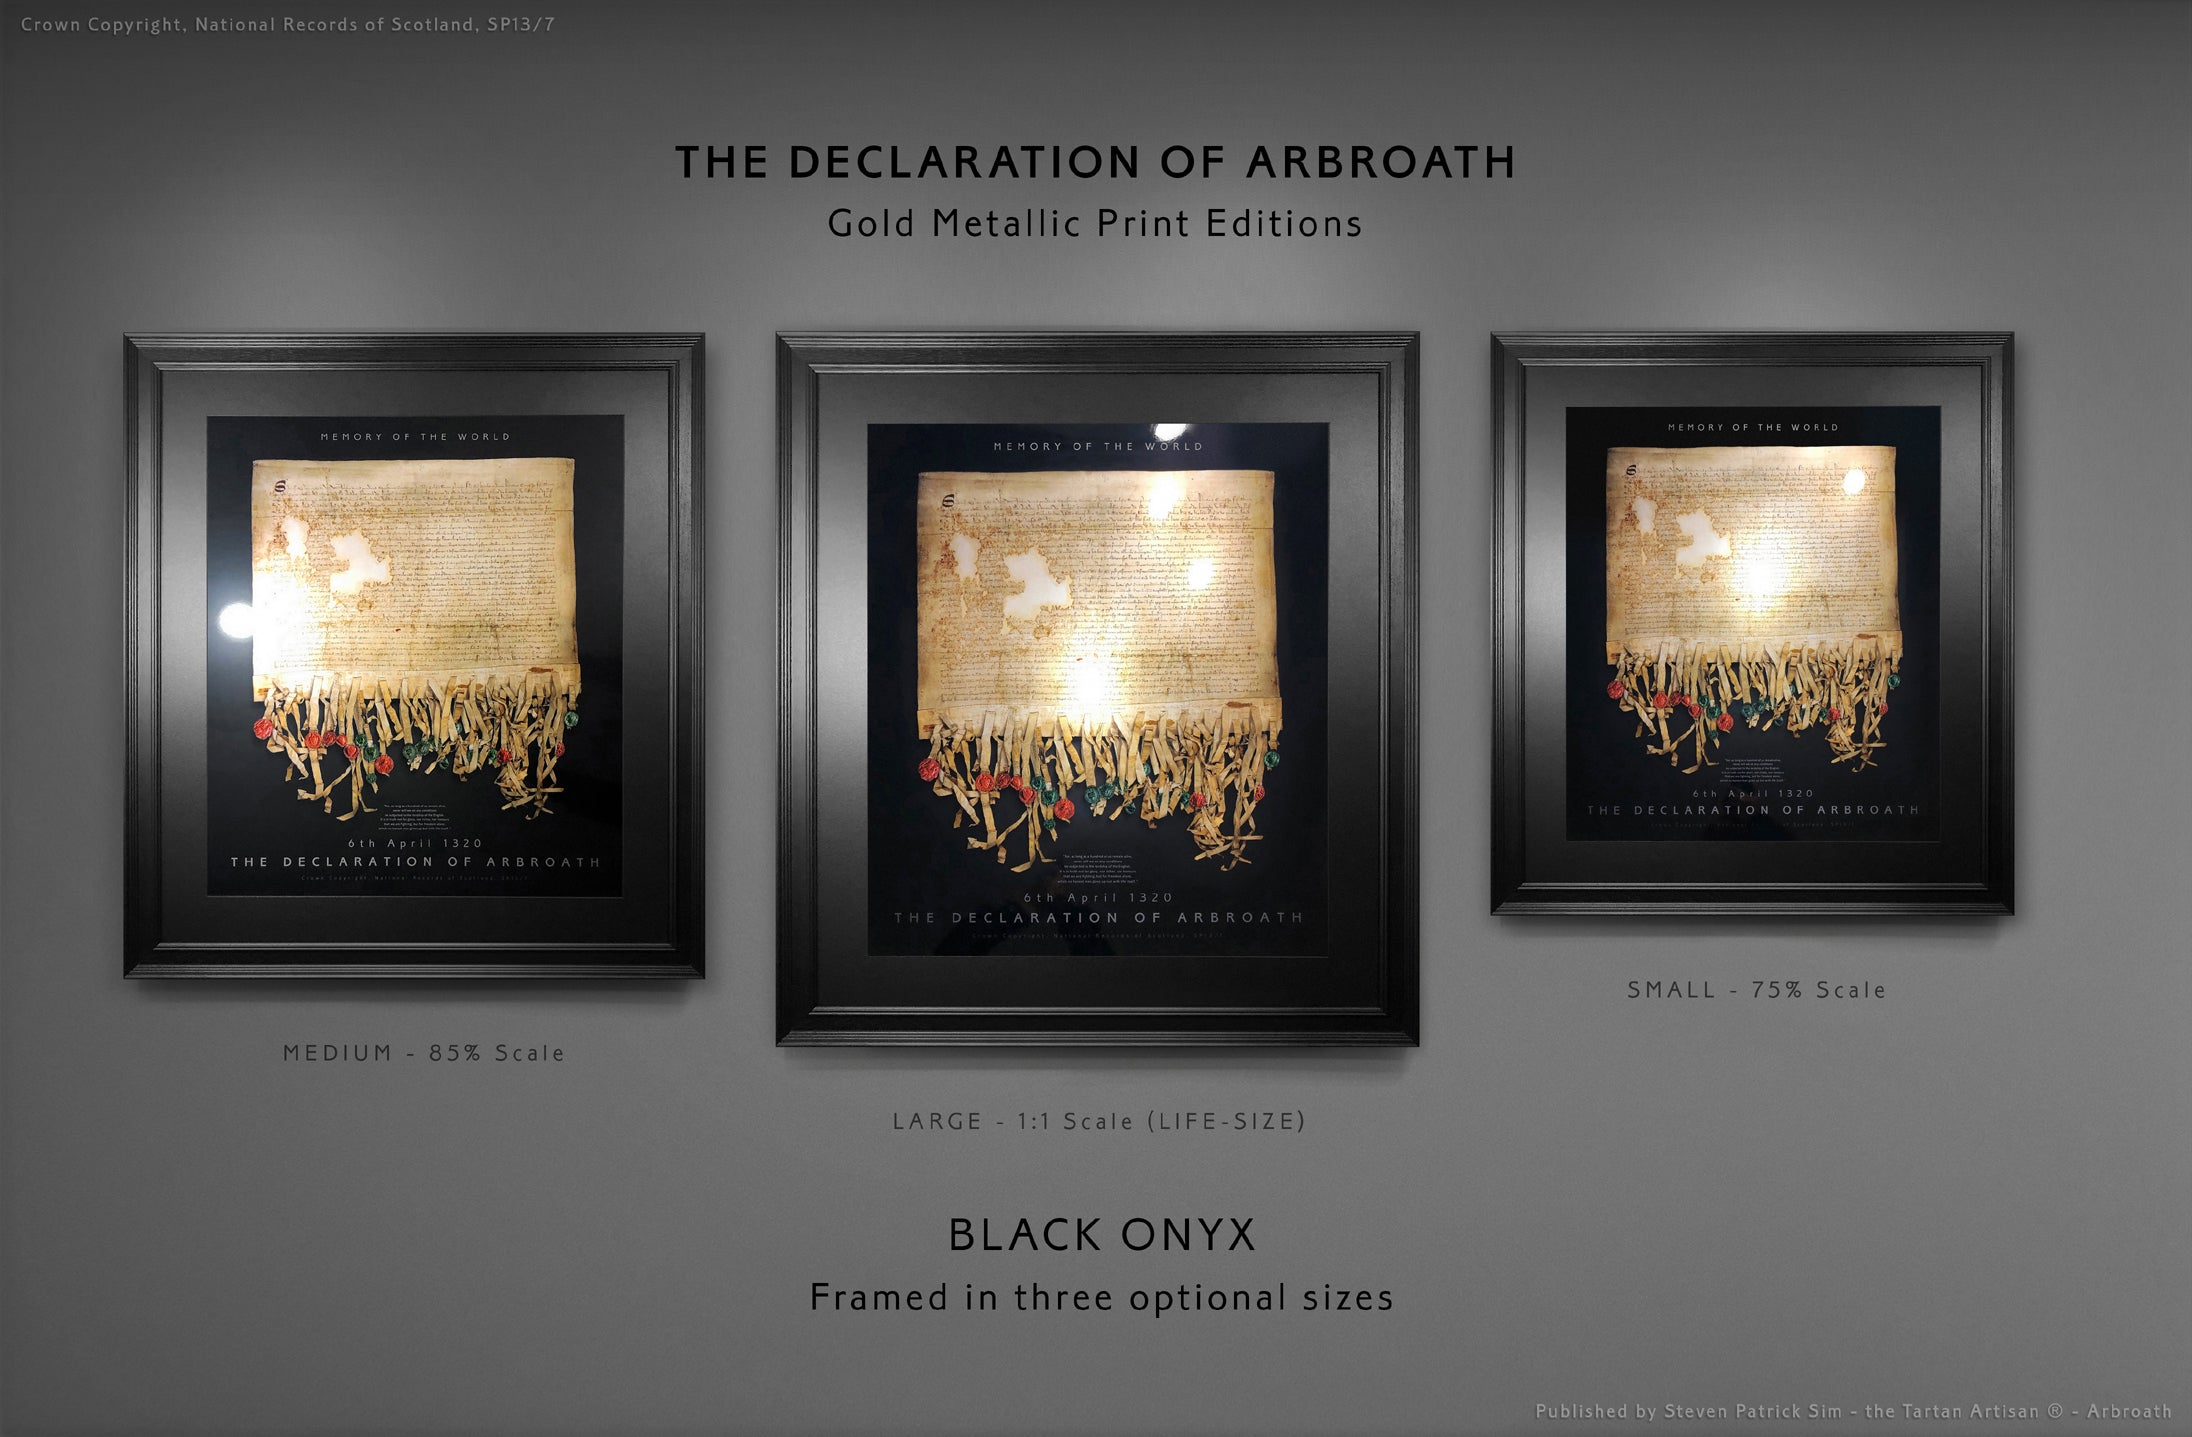 The Declaration of Arbroath Gold Laser Printed Metallic Editions - Black Onyx